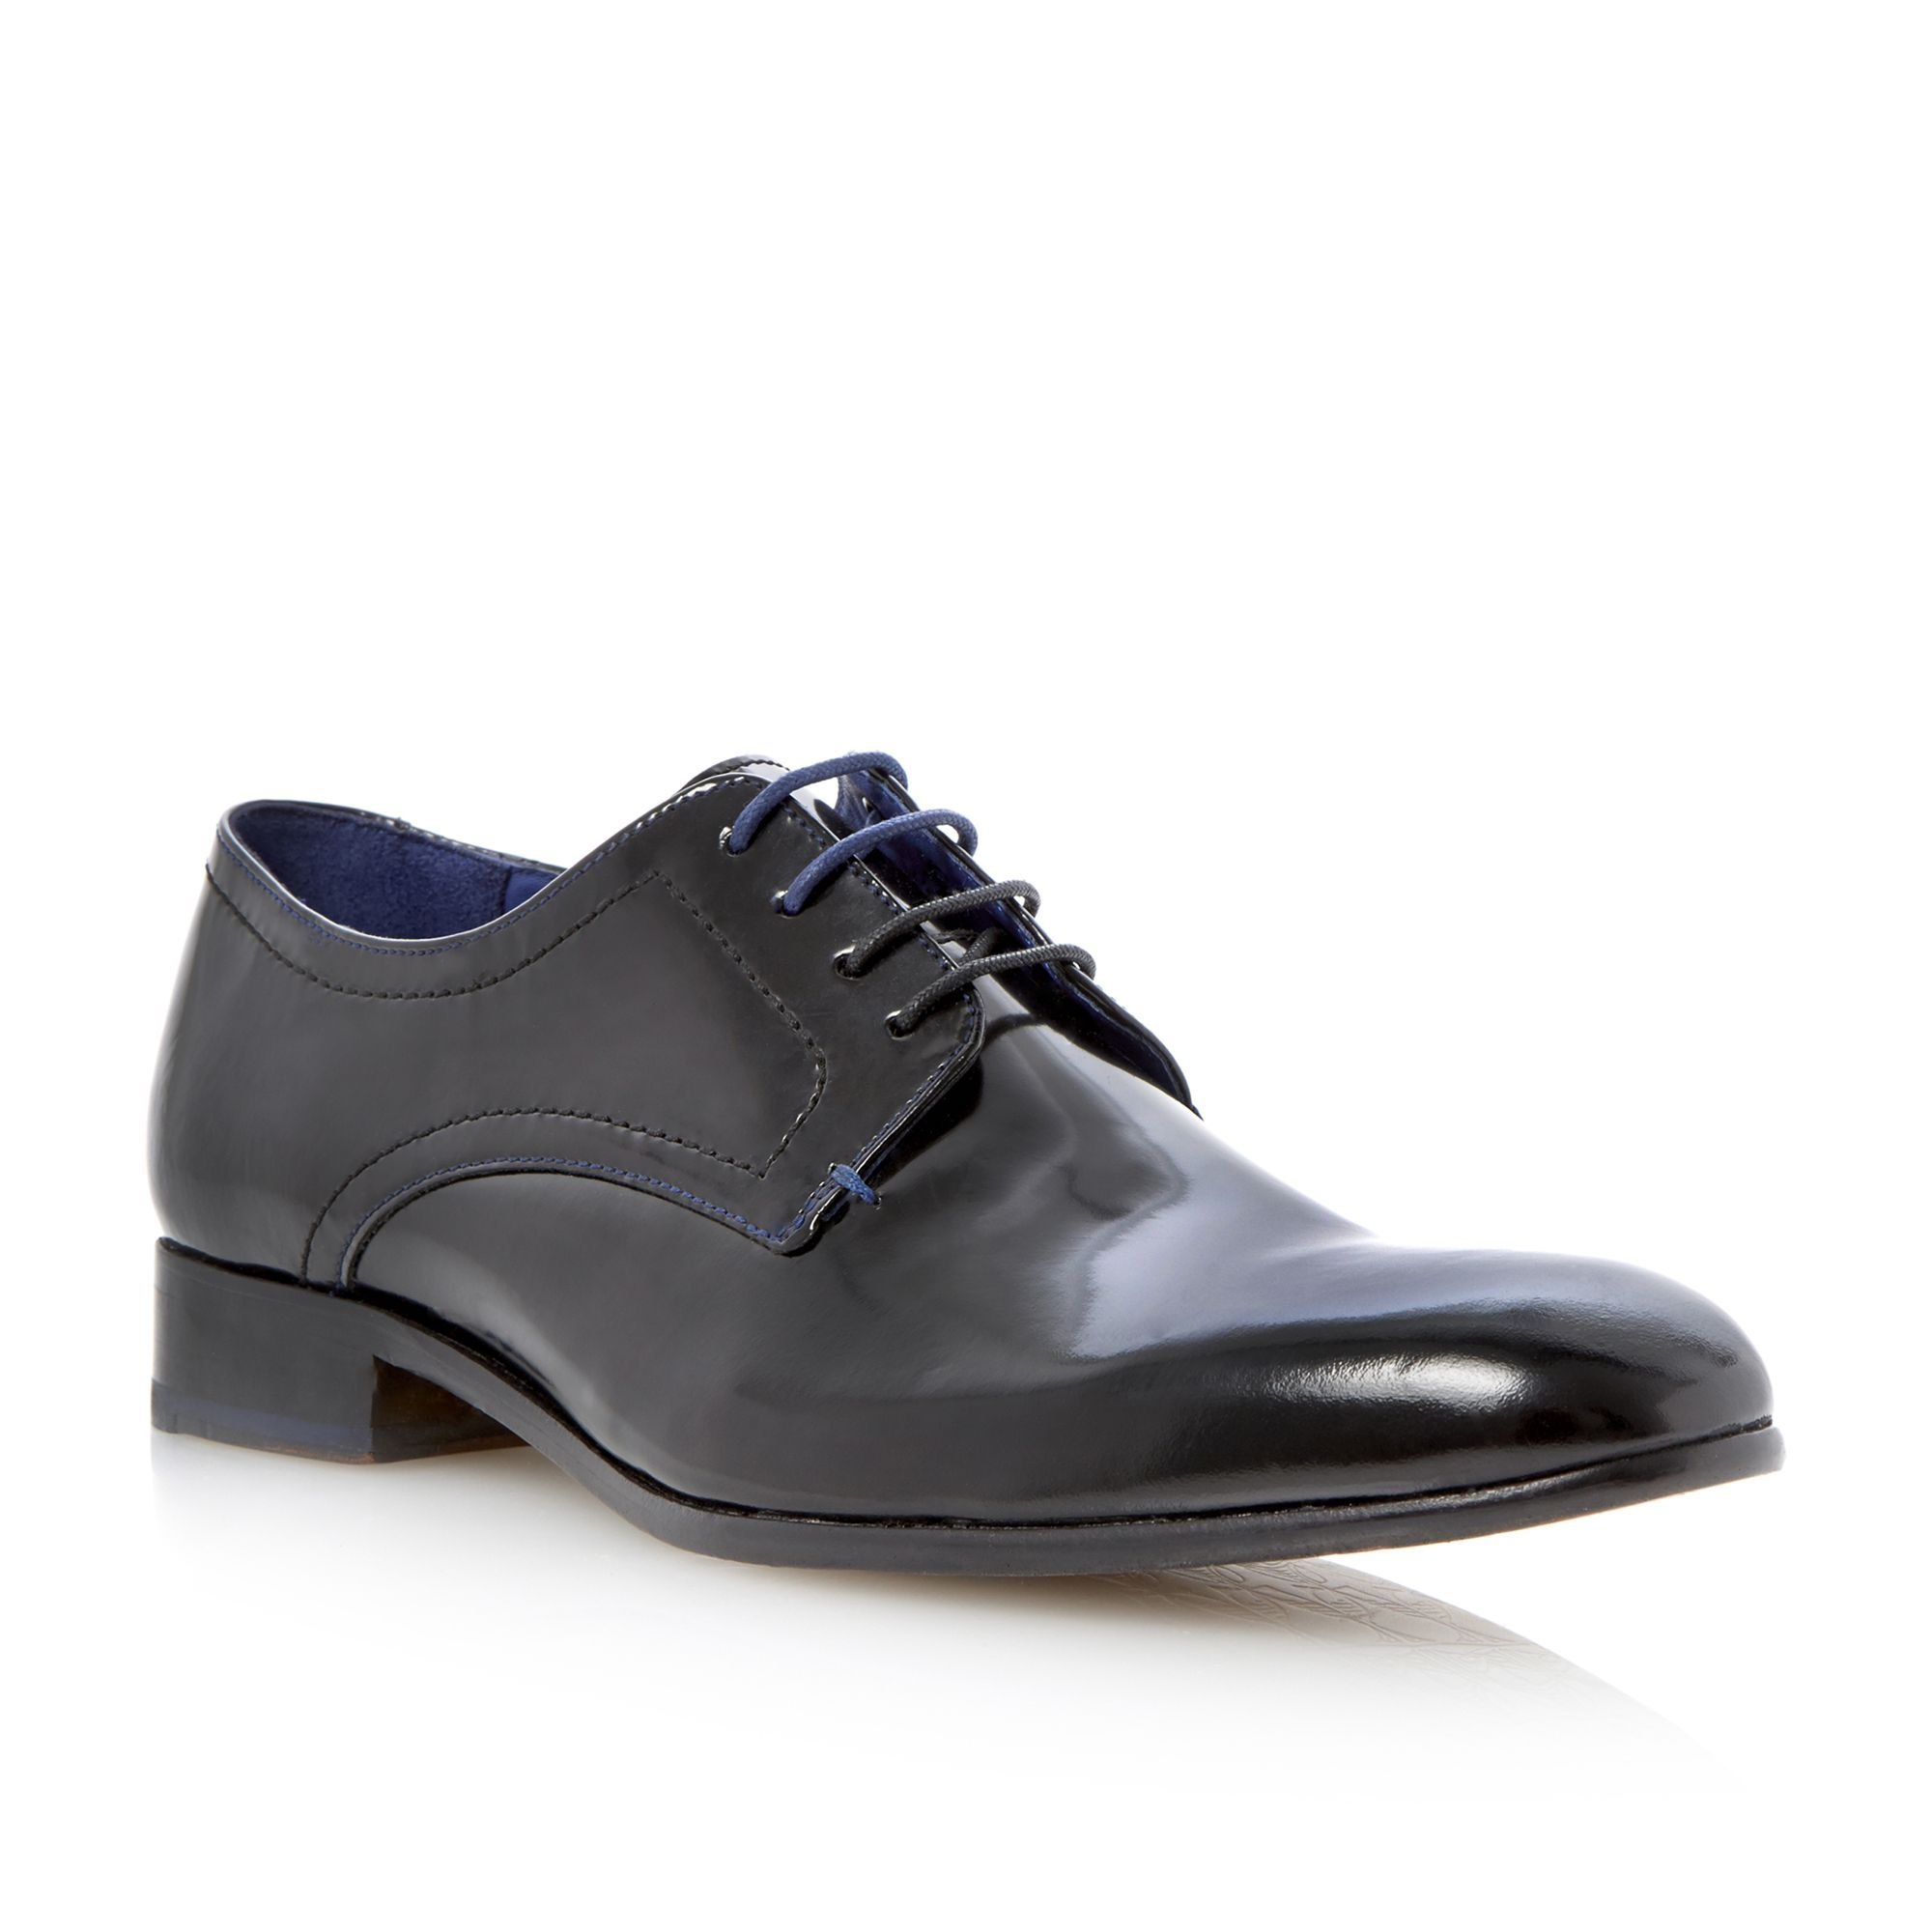 b1a2cb220e02 Ted Baker Billay 2 derby shoe